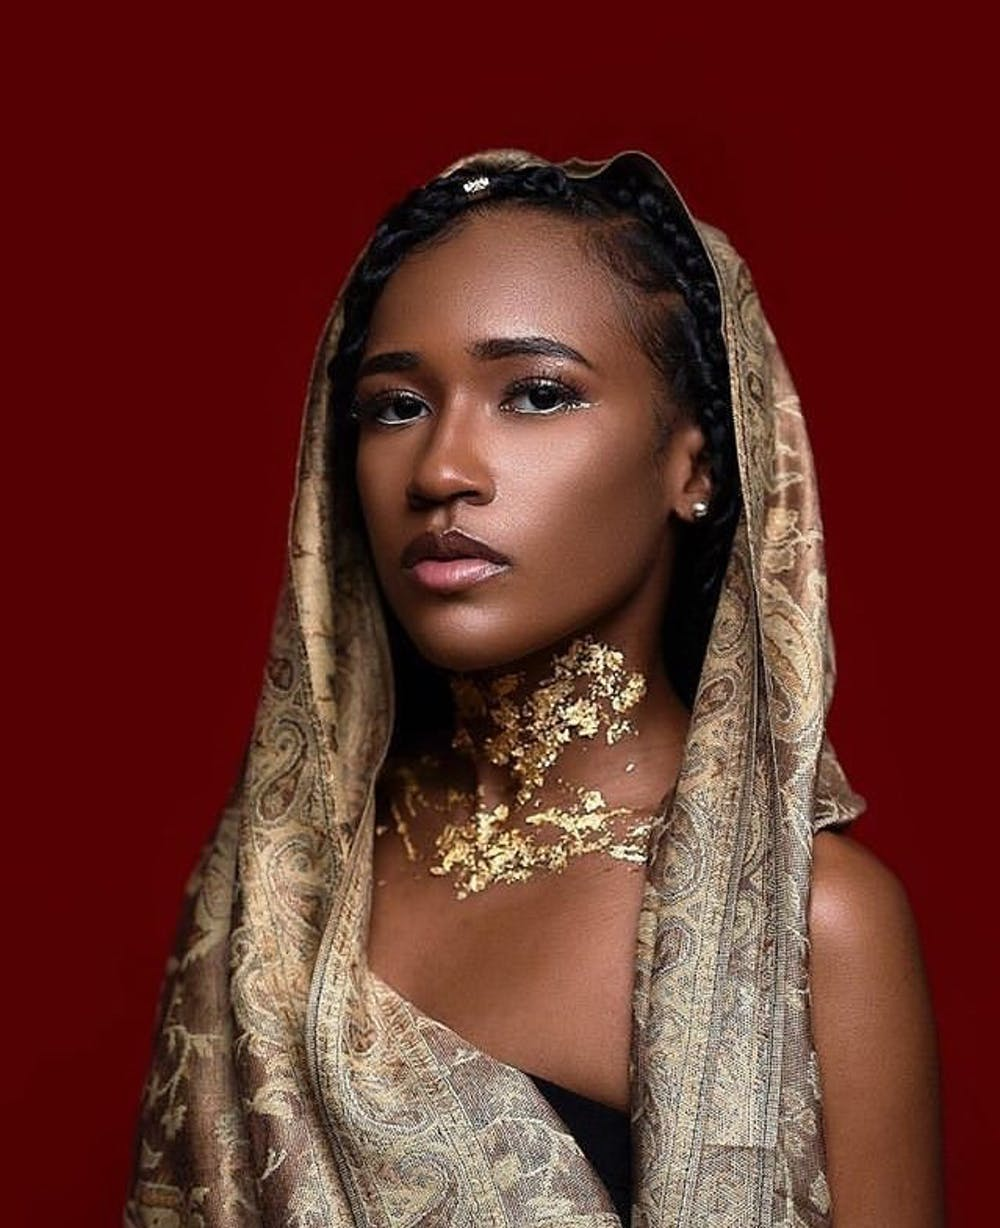 <p>Uma Jalloh, president of the University's Organization of African Students, wanted to showcase black empowerment and her personal experience as a first-generation student.&nbsp;</p>